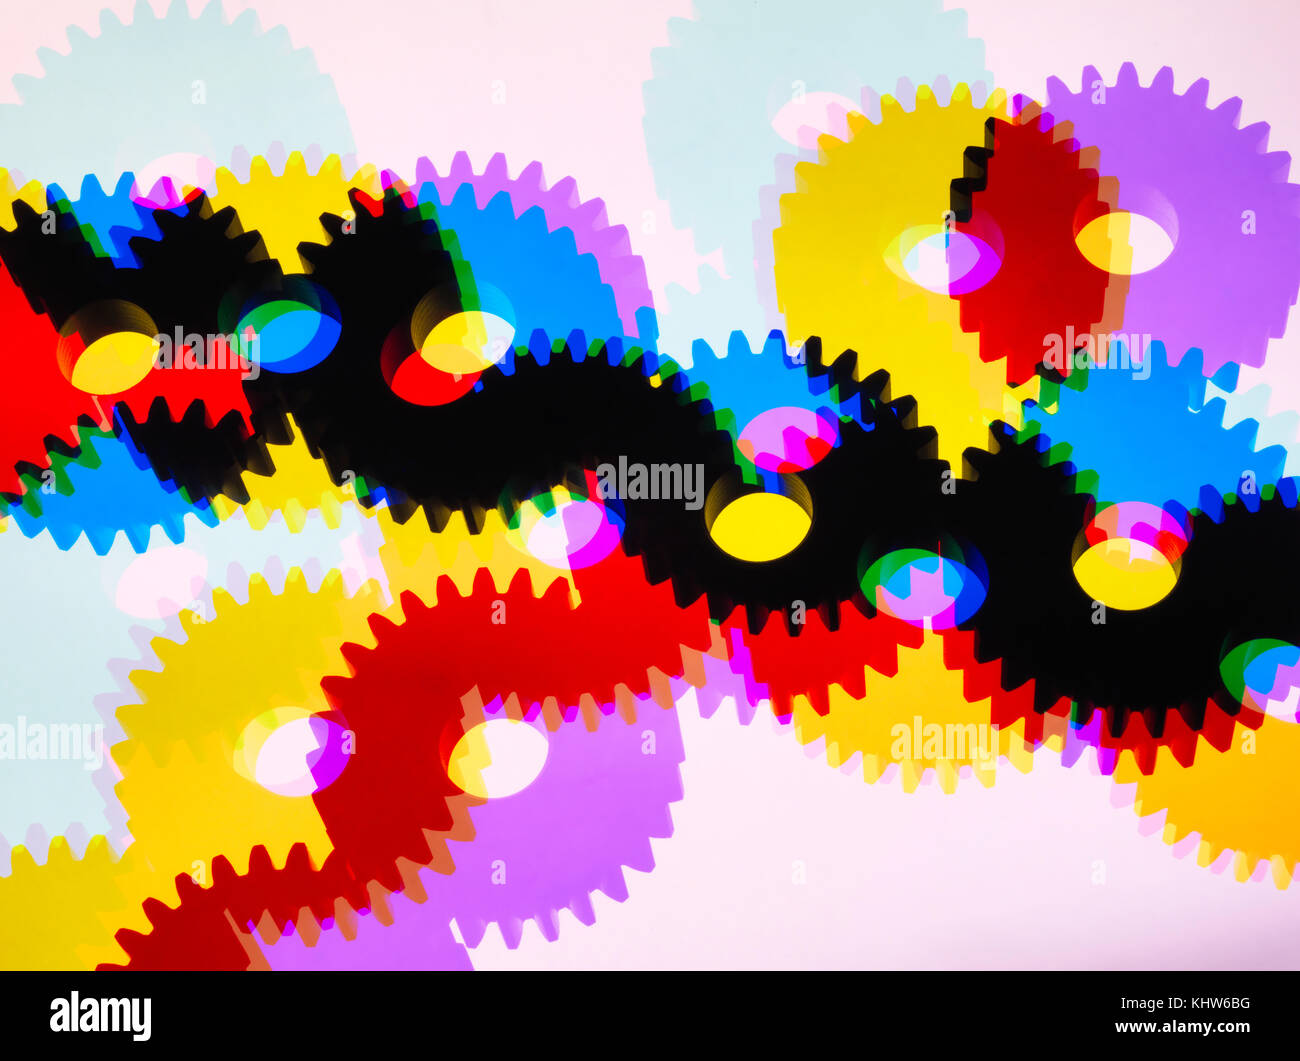 Engineering cog wheels connected to produce power and motion - Stock Image